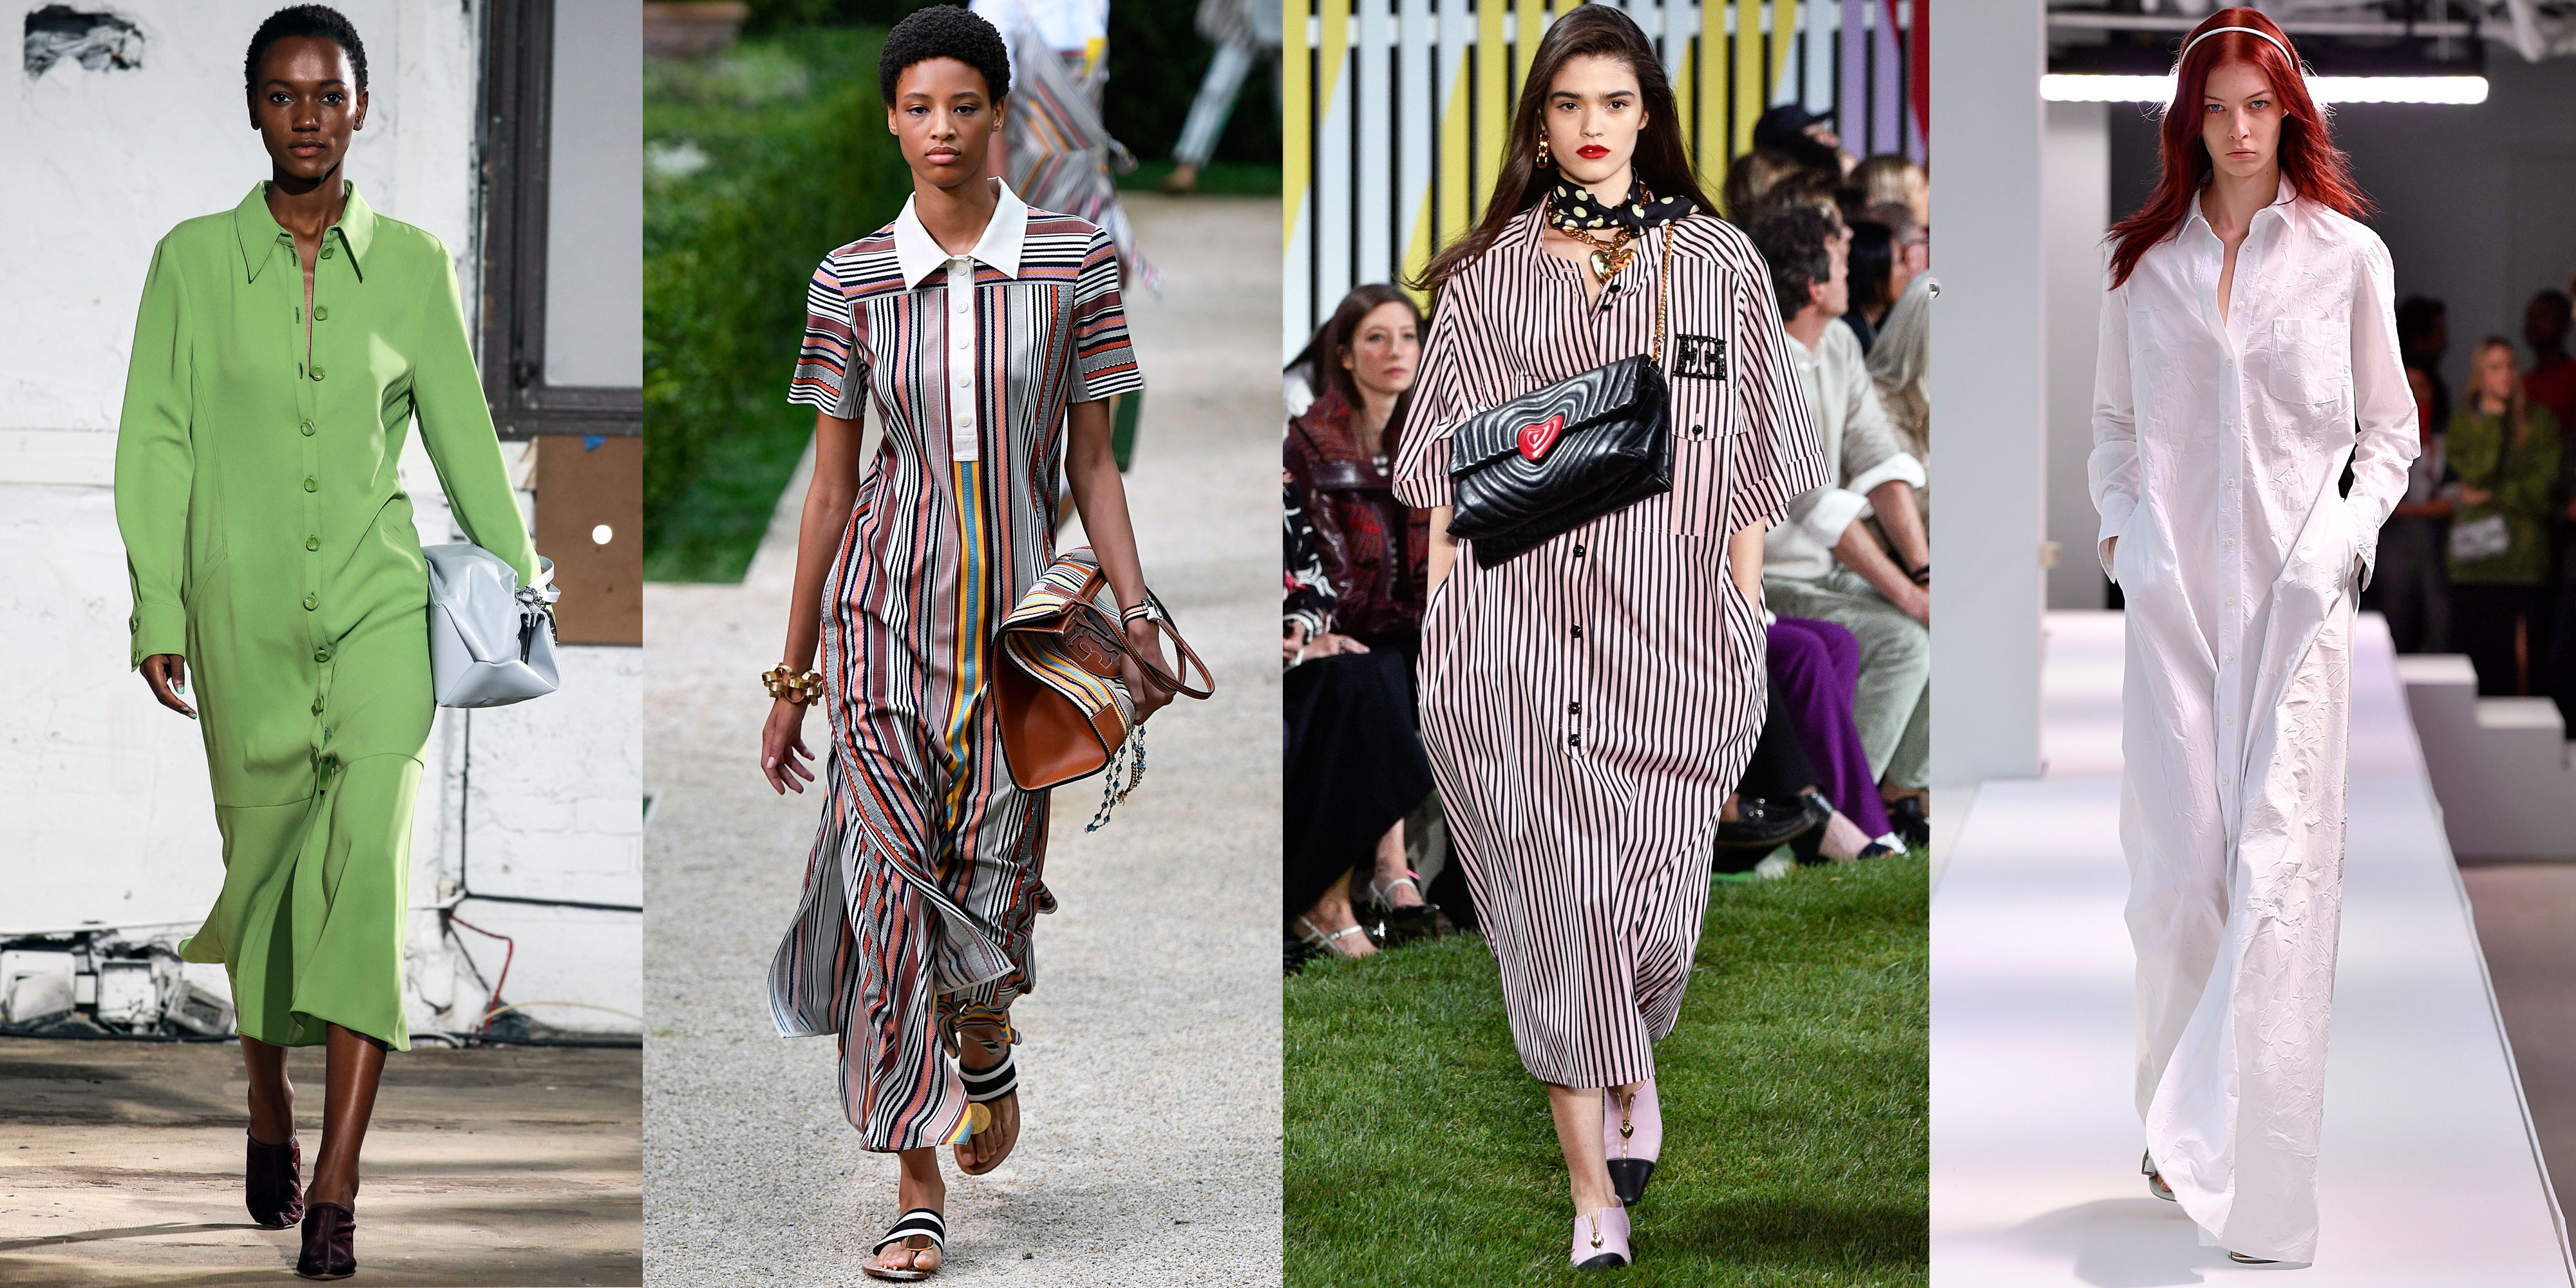 Shirtdresses As seen at Tibi, Tory Burch, Escada, Sies Marjan Designers seemed to unanimously agree that a shirtdress should be in everyone's wardrobe next season. This wearable staple came in a medley of prints and colors, from Tory Burch's striped collared dress to Sies Marjan's crisp white look.